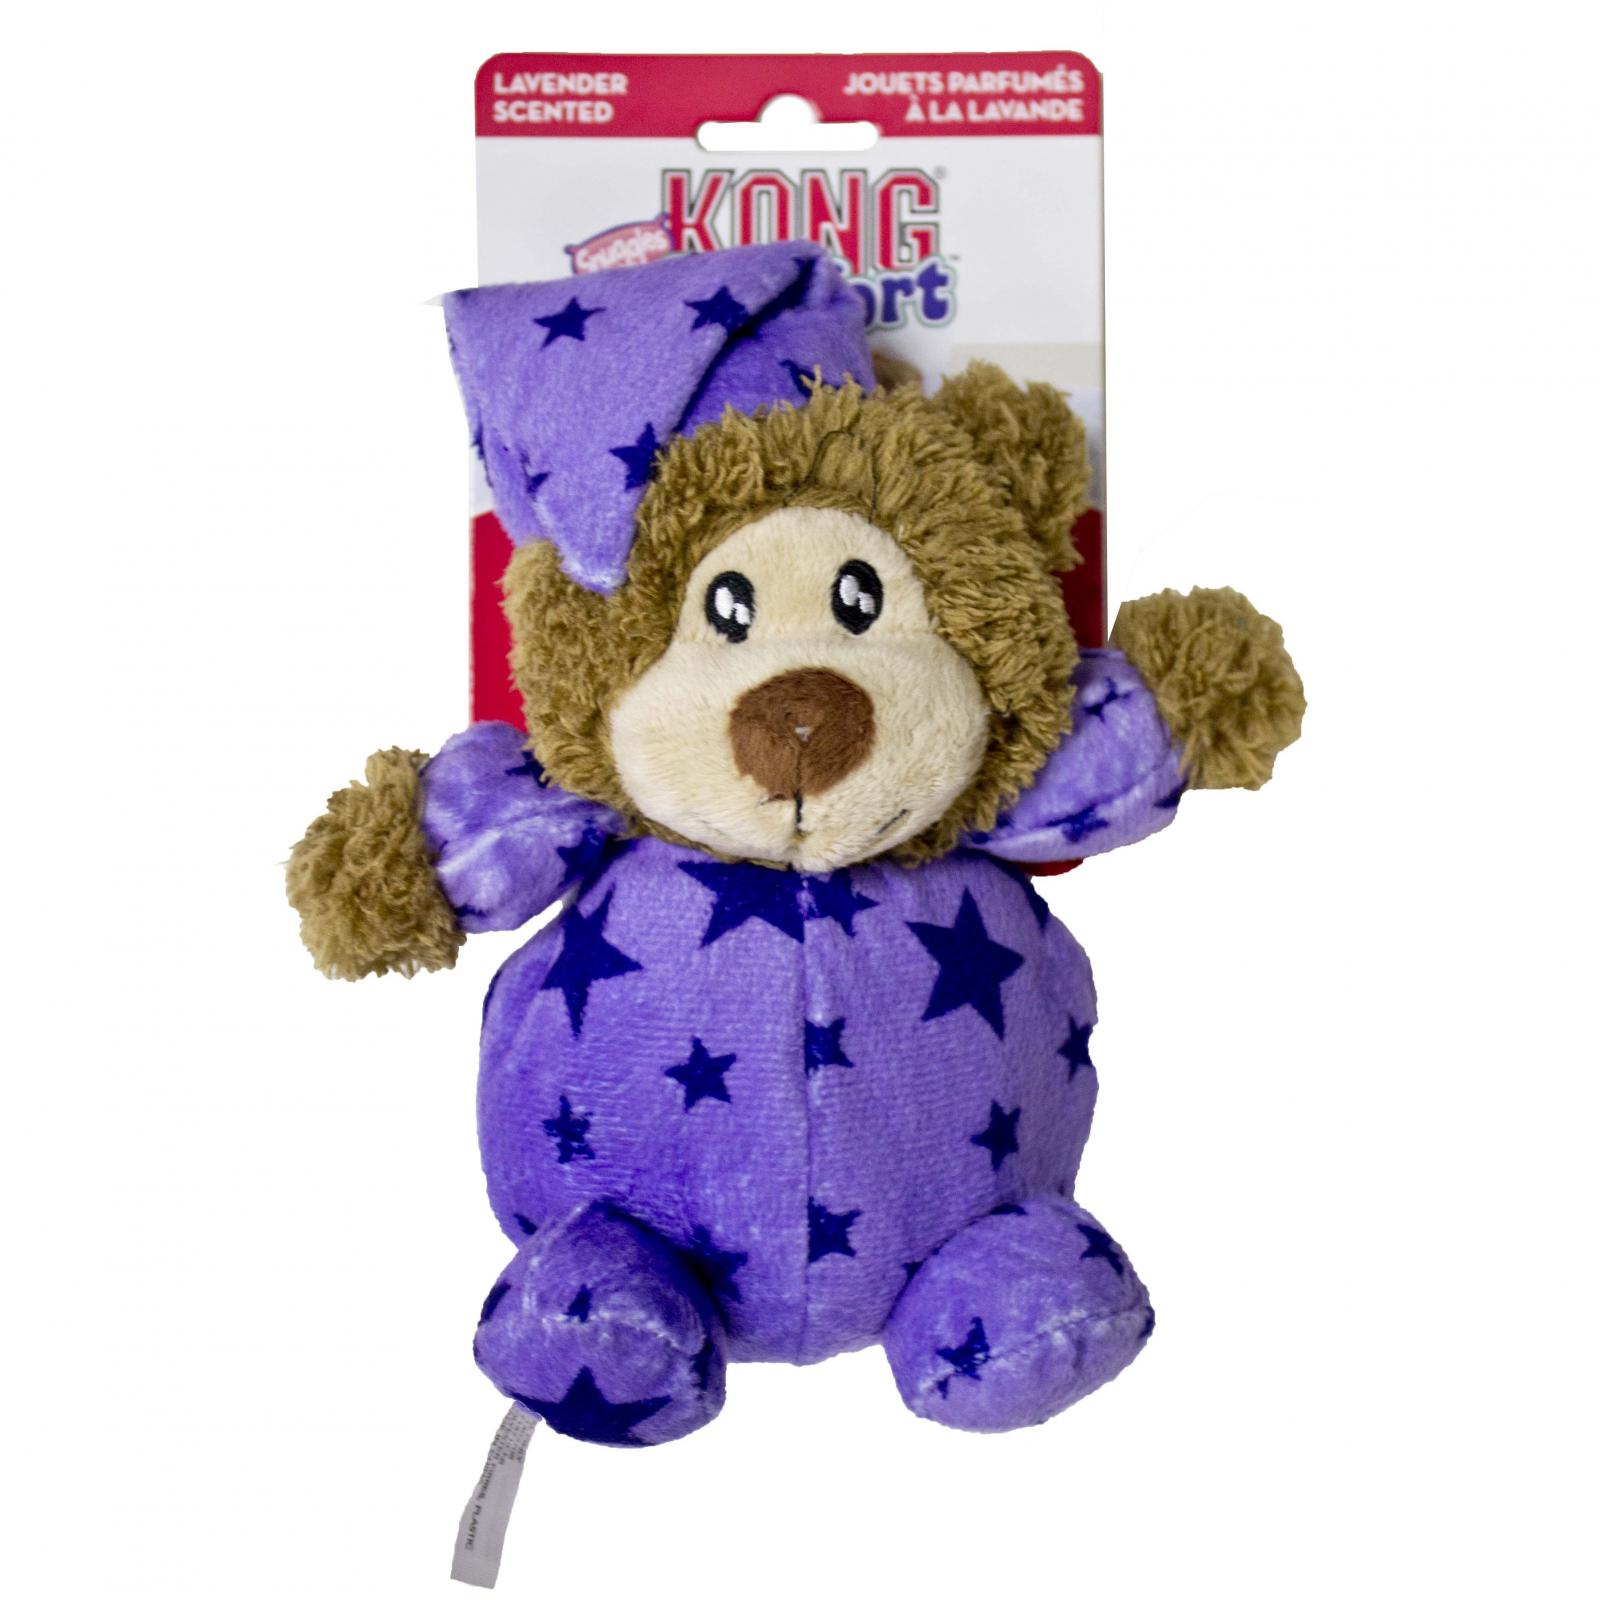 Kong Kong Comfort Snuggles Toy - Assorted Colours